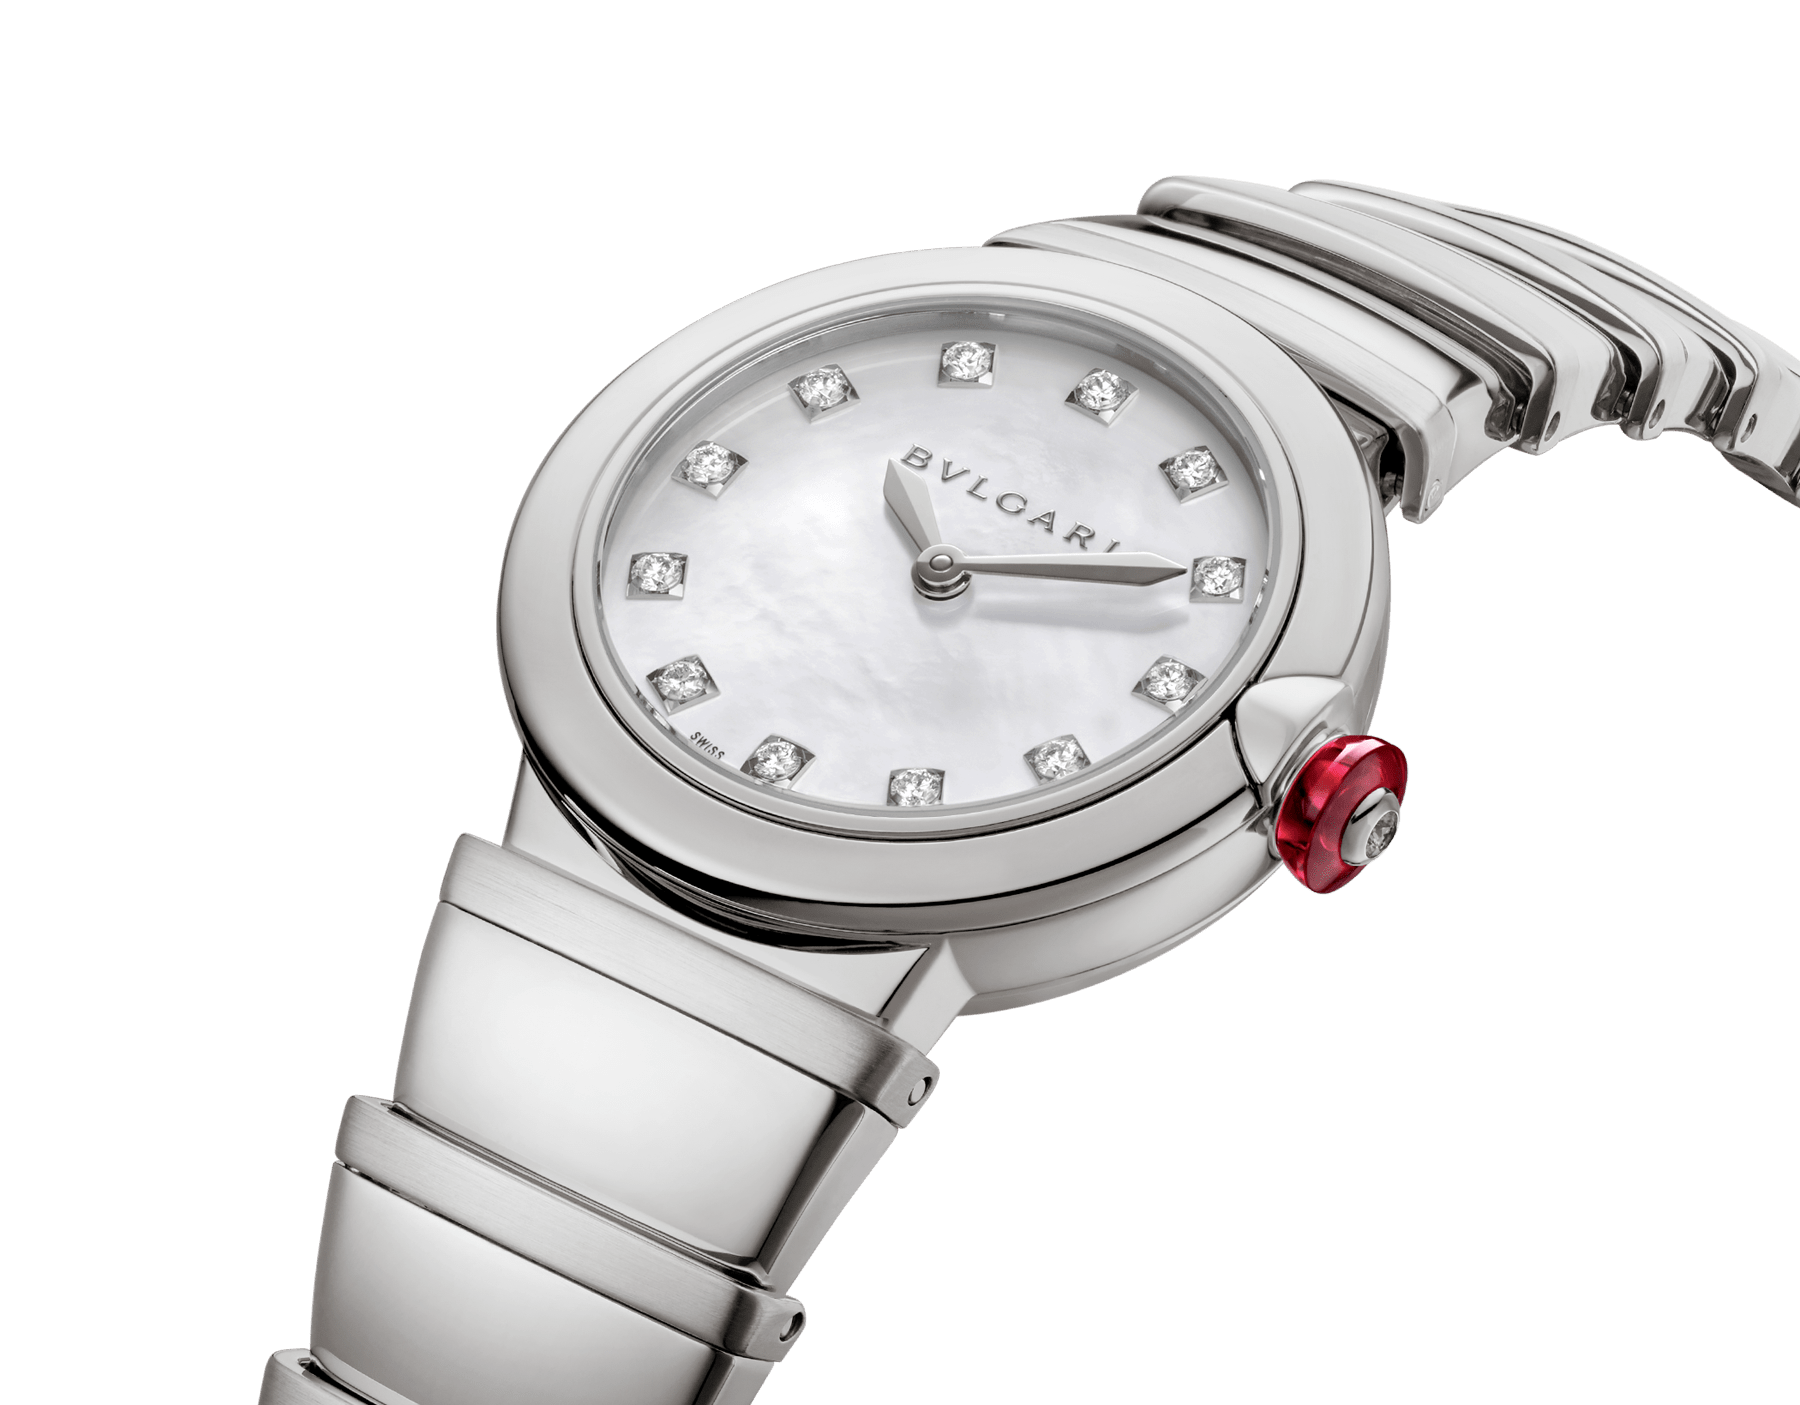 LVCEA watch in stainless steel case and bracelet, white mother-of-pearl dial and diamond indexes. 102196 image 2